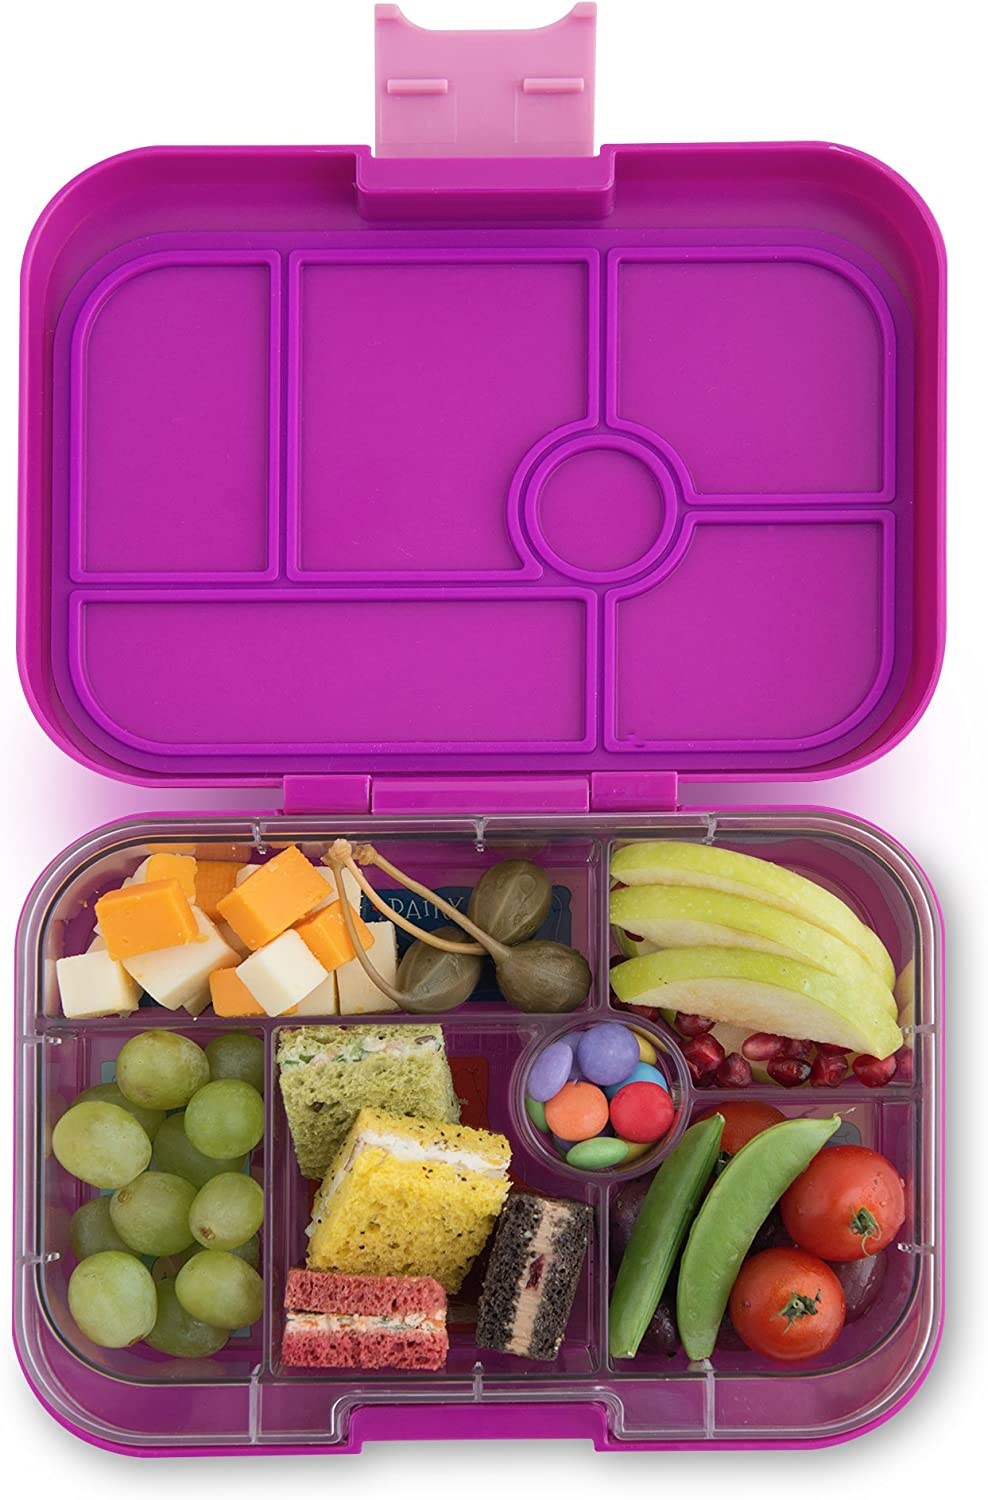 Top 9 Best Bento Box For Toddlers Lunch Time (2020 Reviews) 2